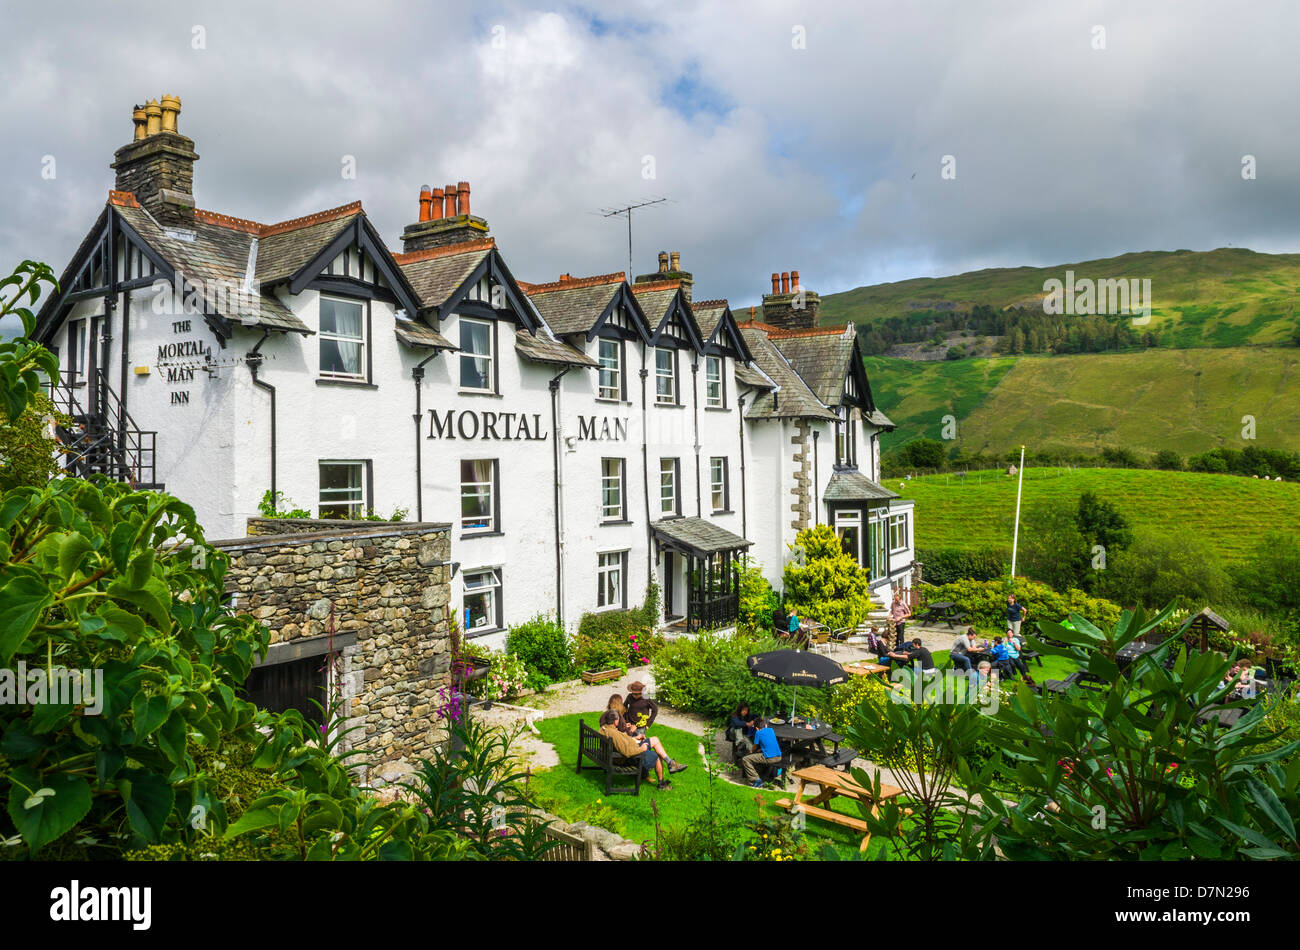 The Mortal Man Inn at Troutbeck in the Lake District, near Windermere, Cumbria, England. - Stock Image